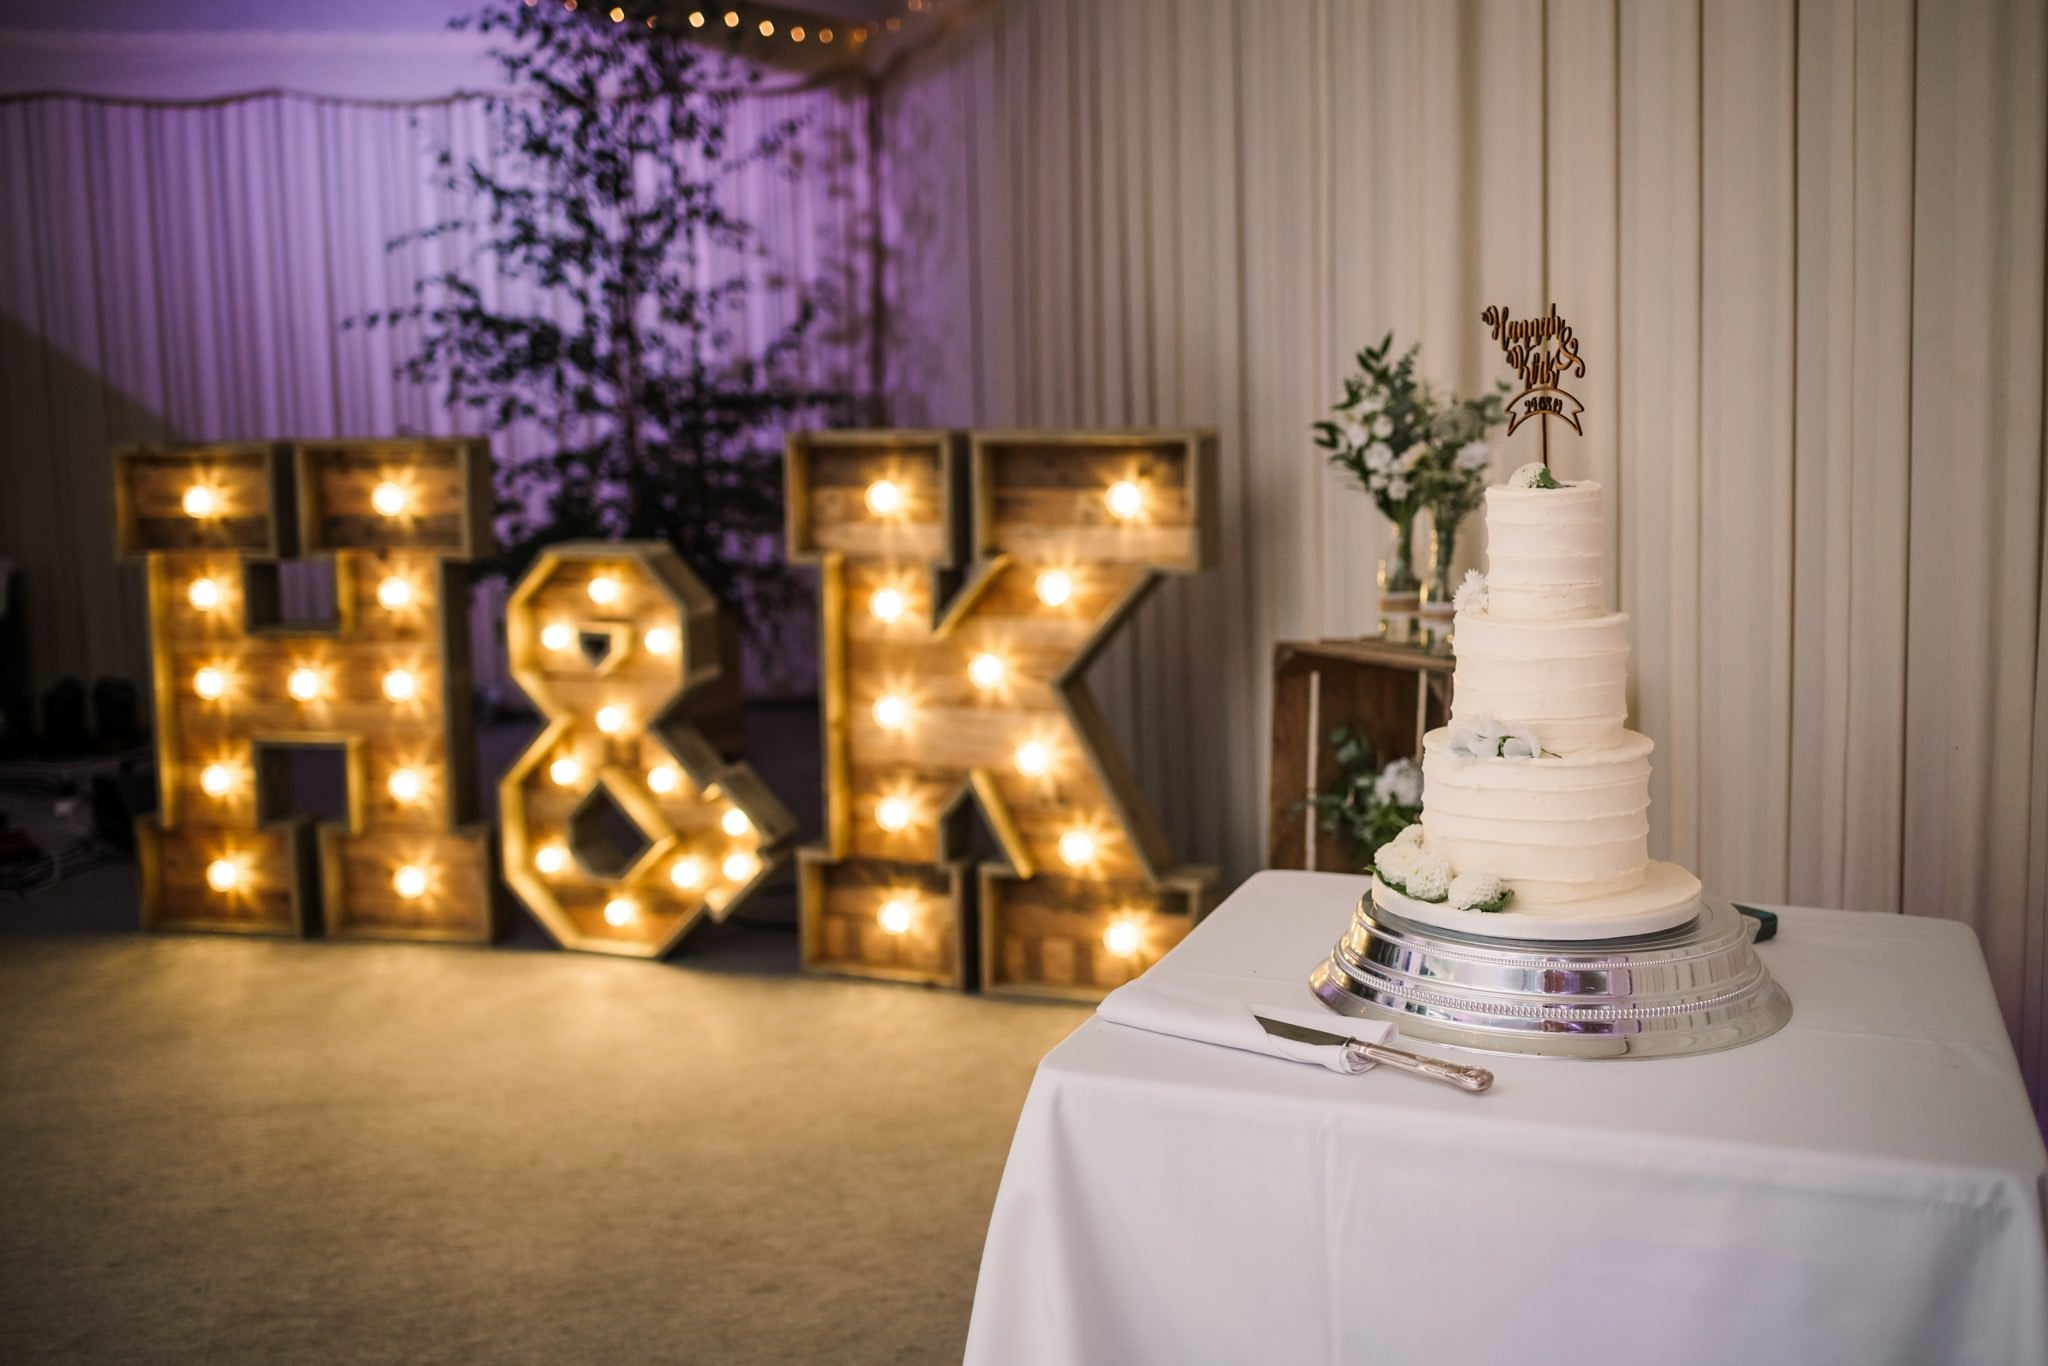 Wedding cake and light up letters at Gordleton Mill Wedding